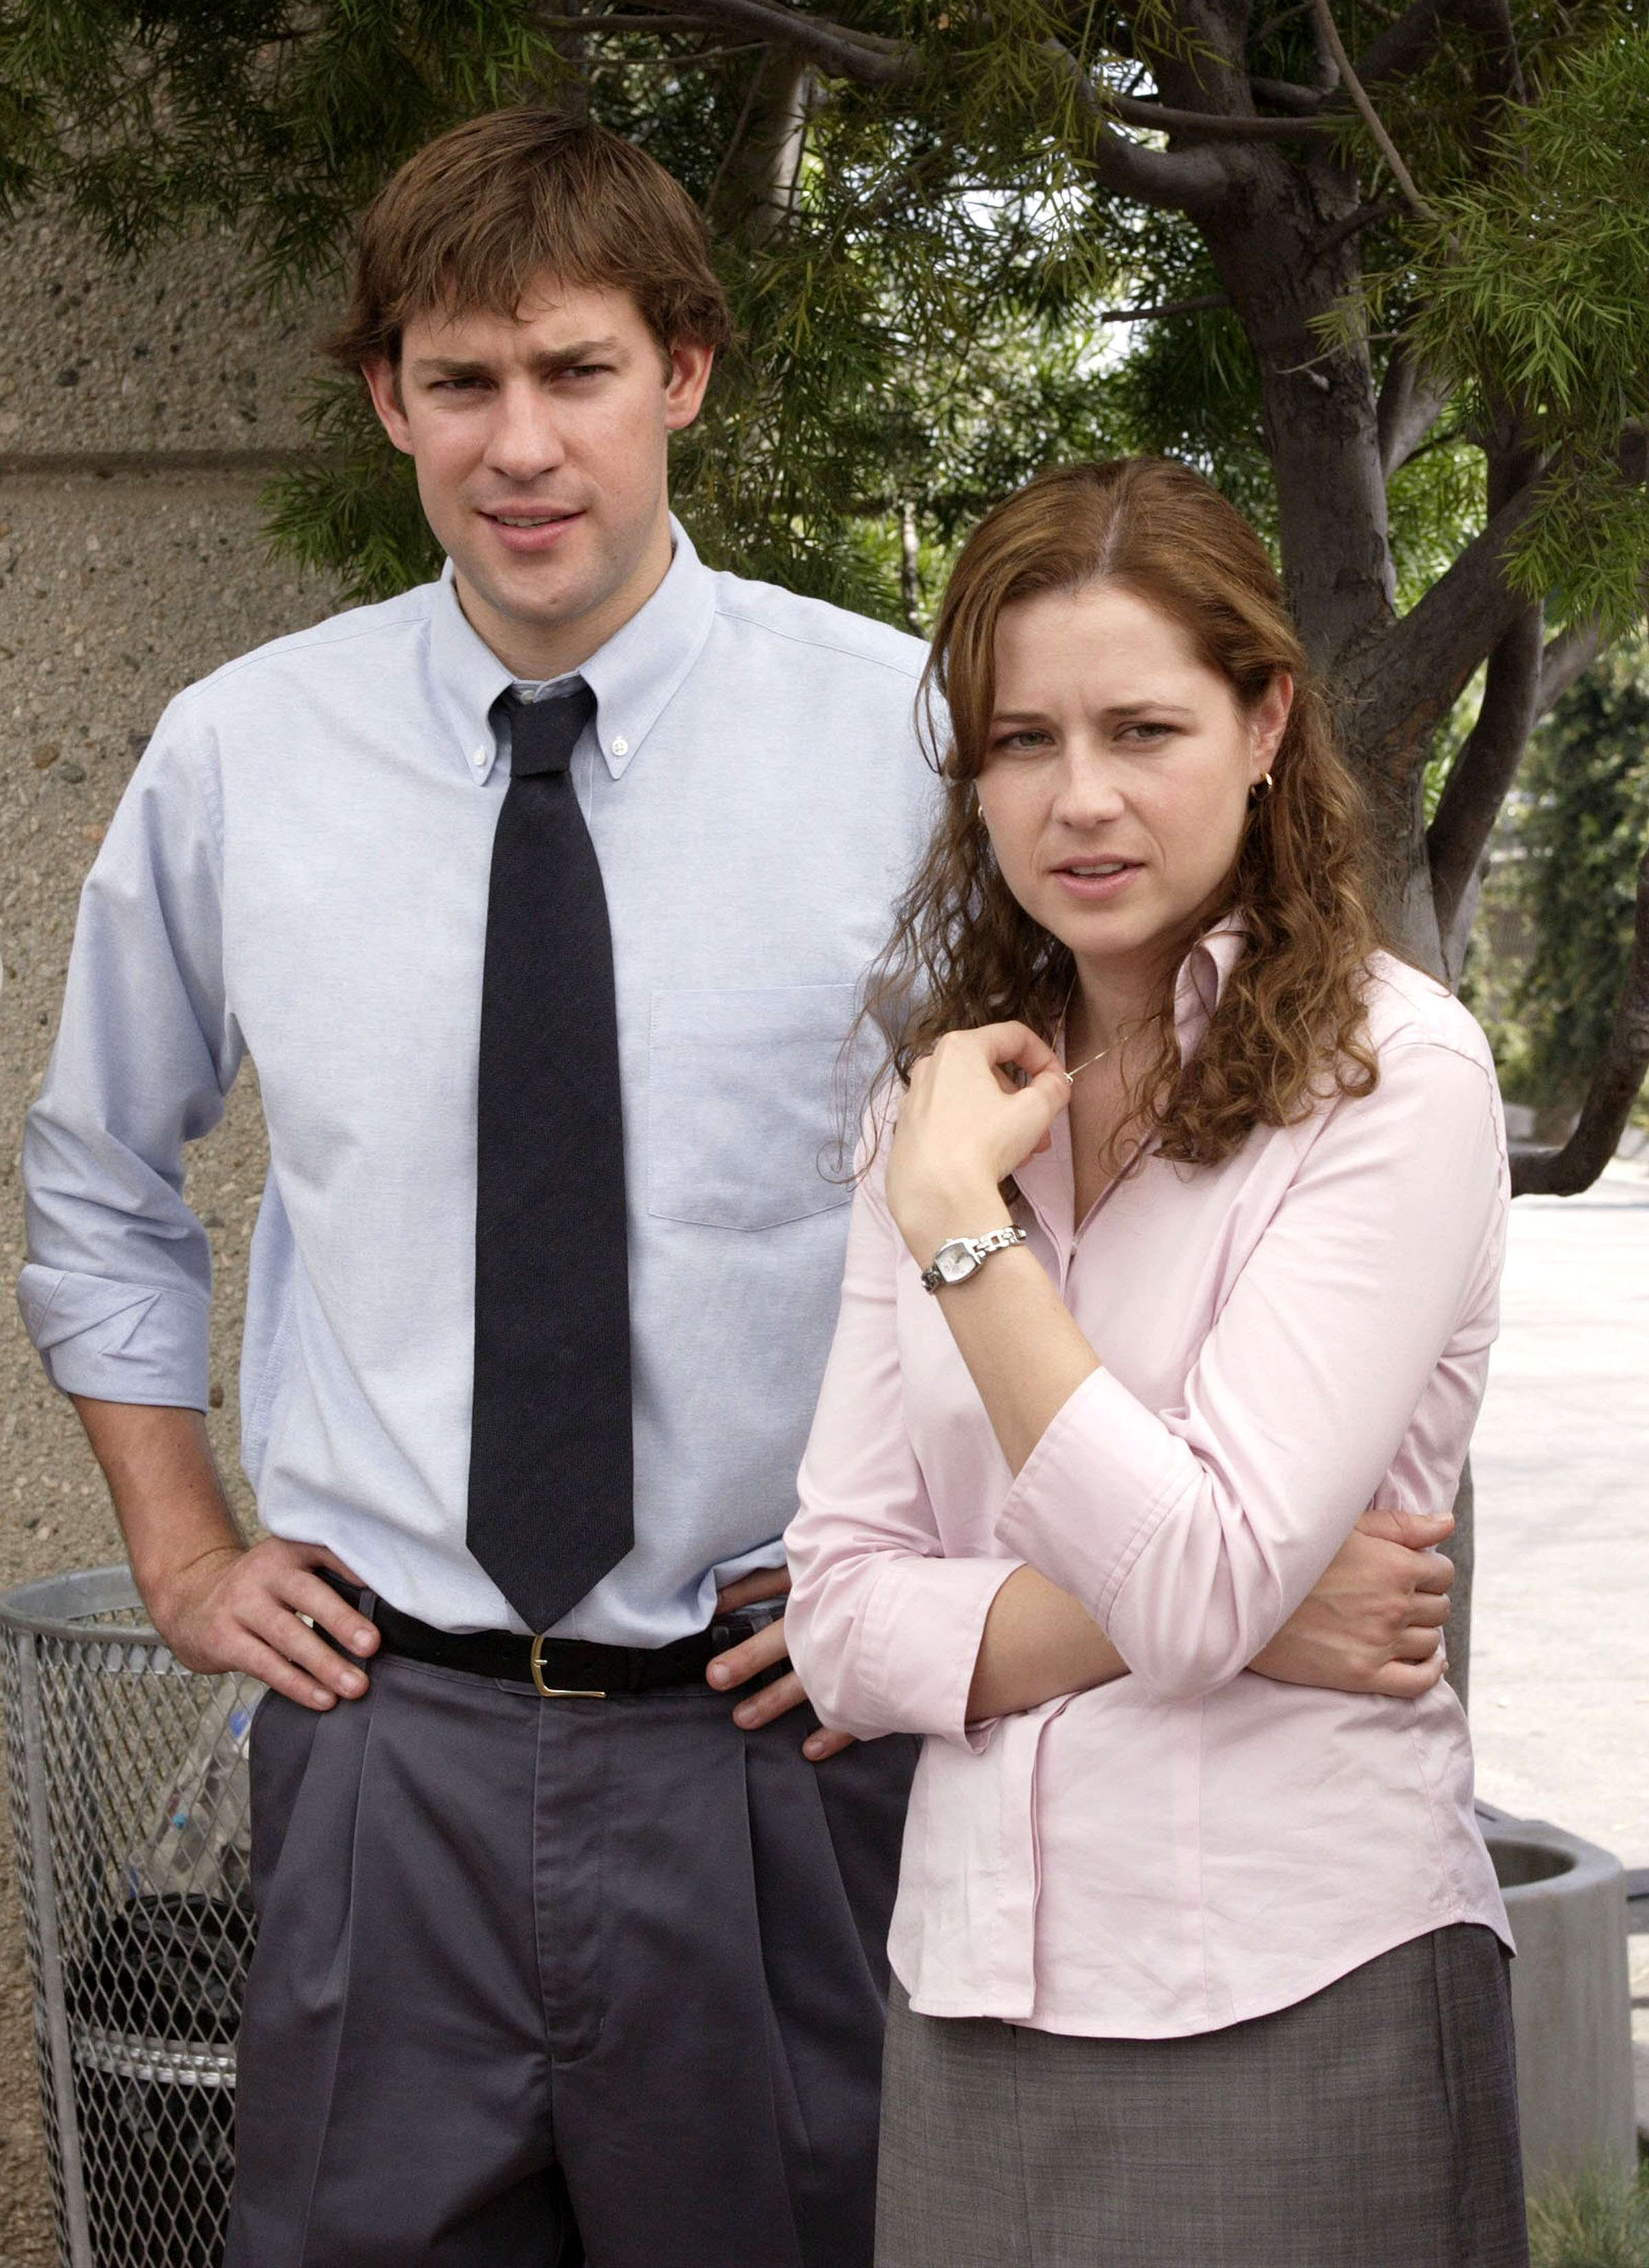 John Krasinski as Jim and Jenna Fischer as Pam